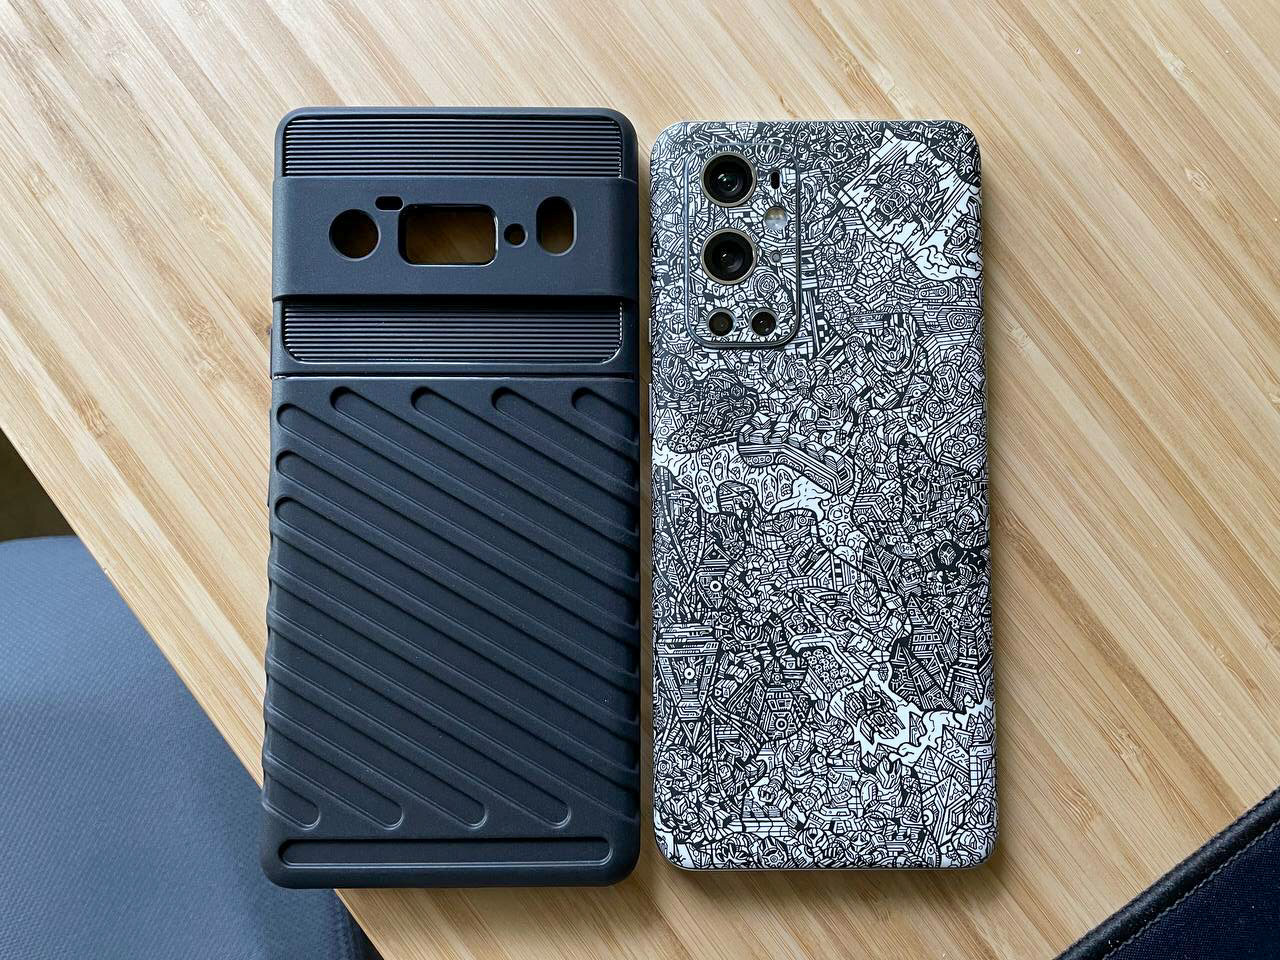 Active with the principal Pixel 6 Pro case